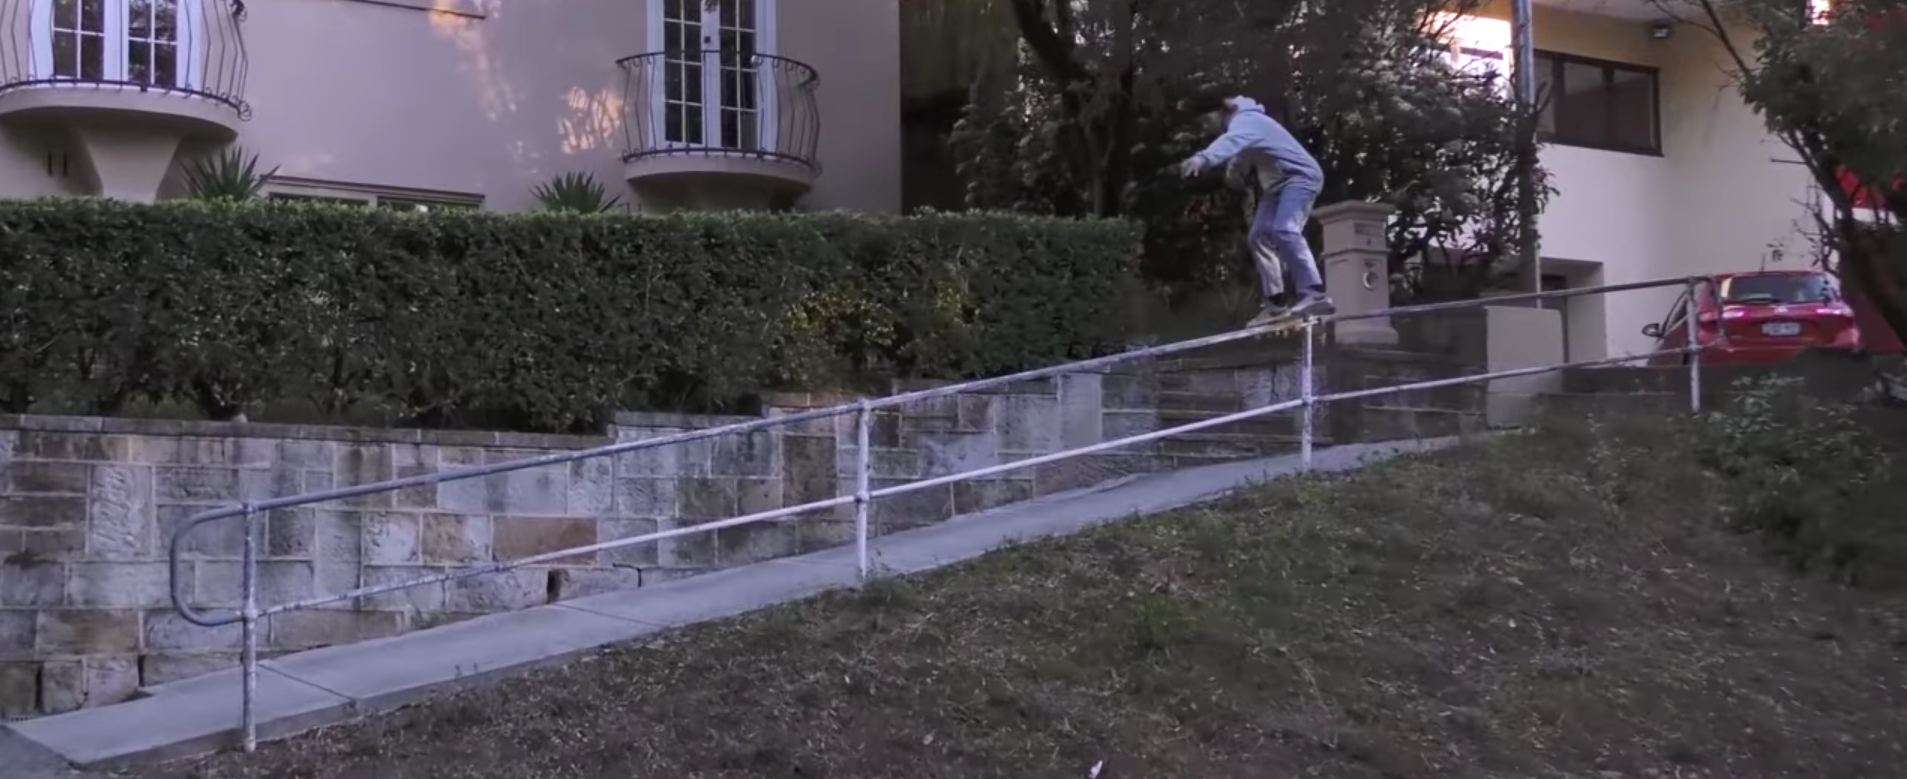 Rowan Davis with a heavy boardslide down a handicap rail.